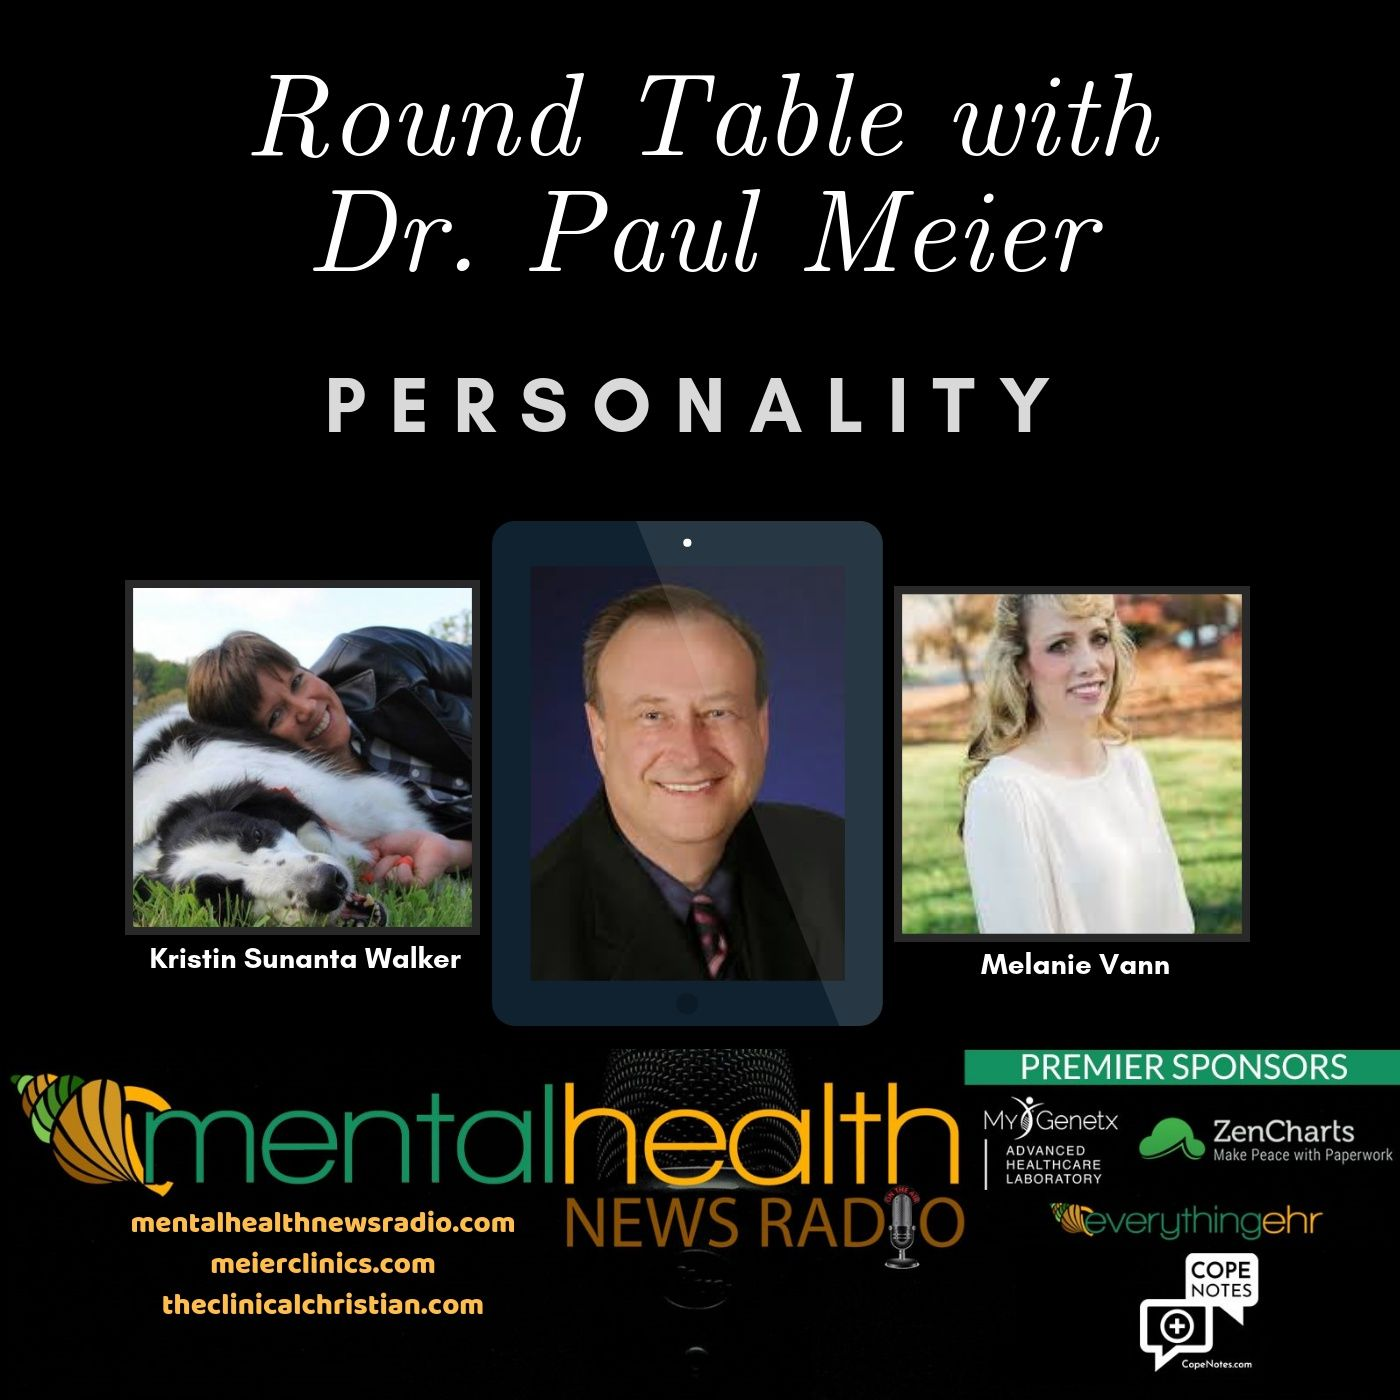 Mental Health News Radio - Round Table with Dr Paul Meier: Personality